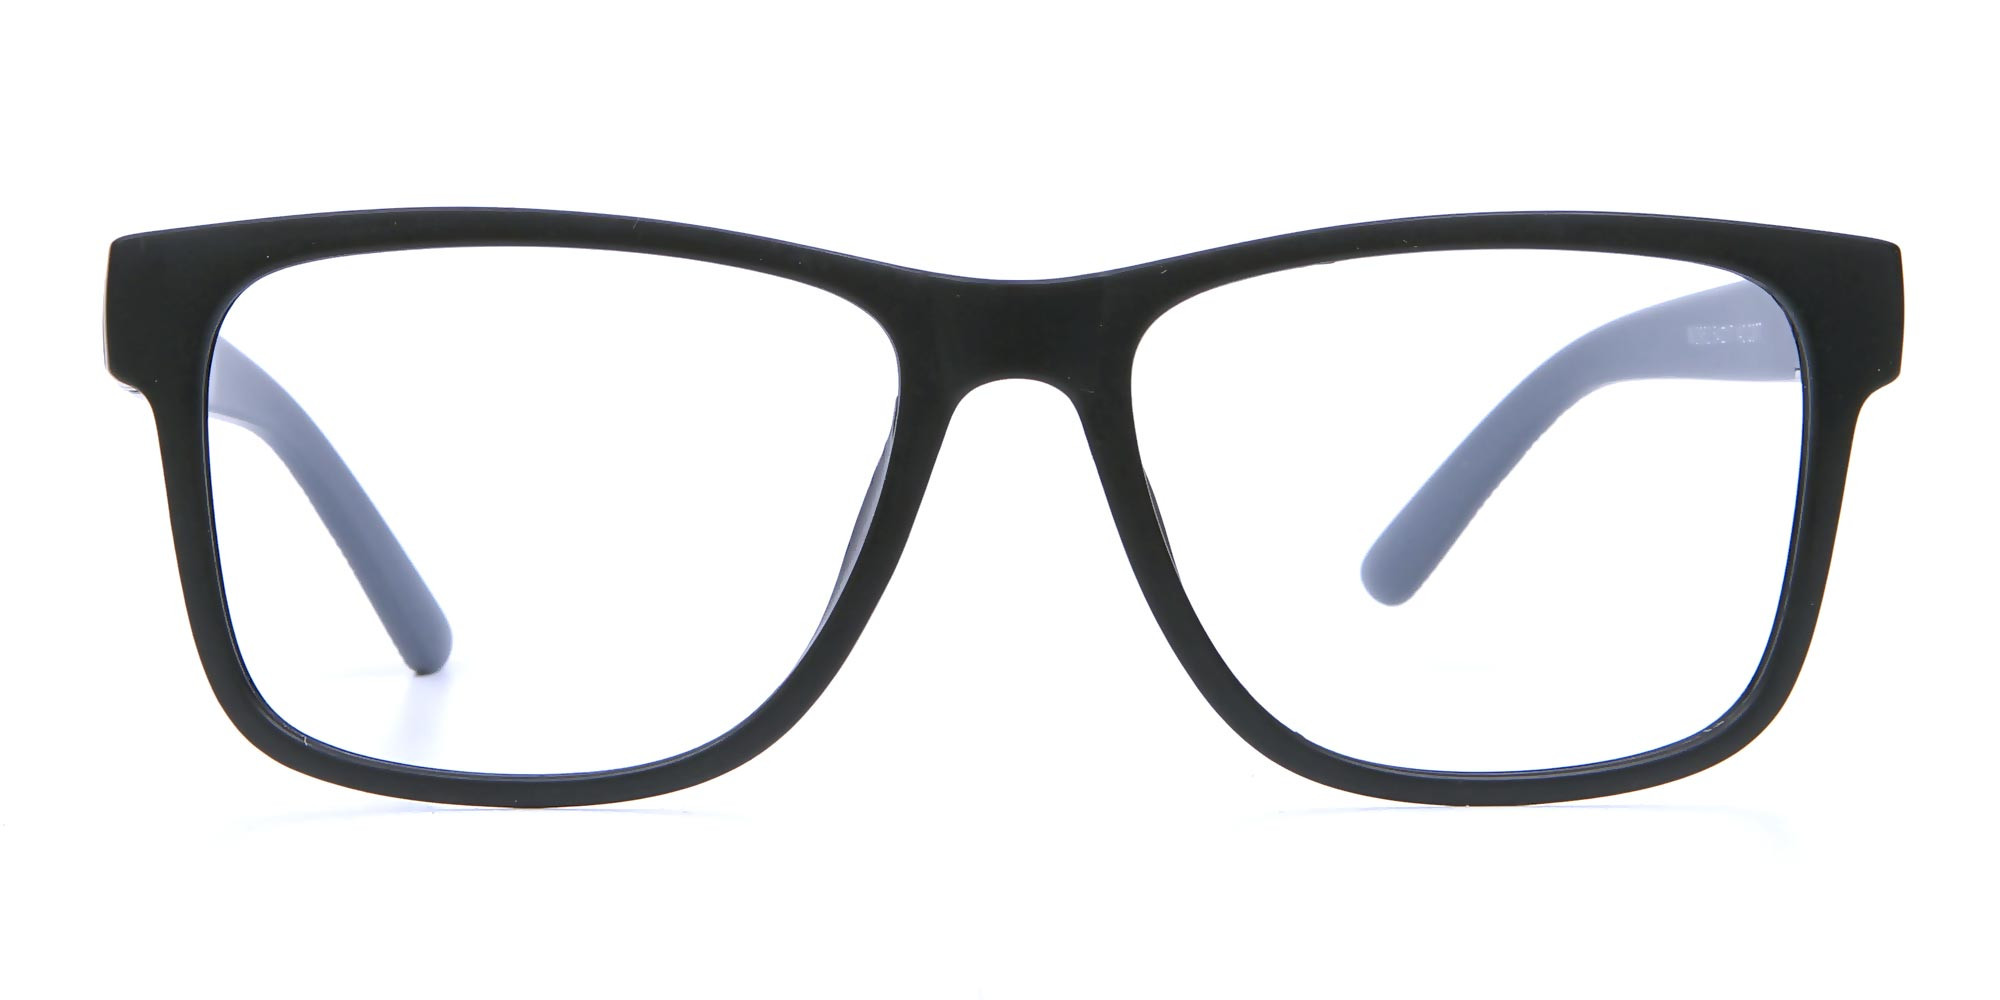 Subtle Style of Eyeglasses